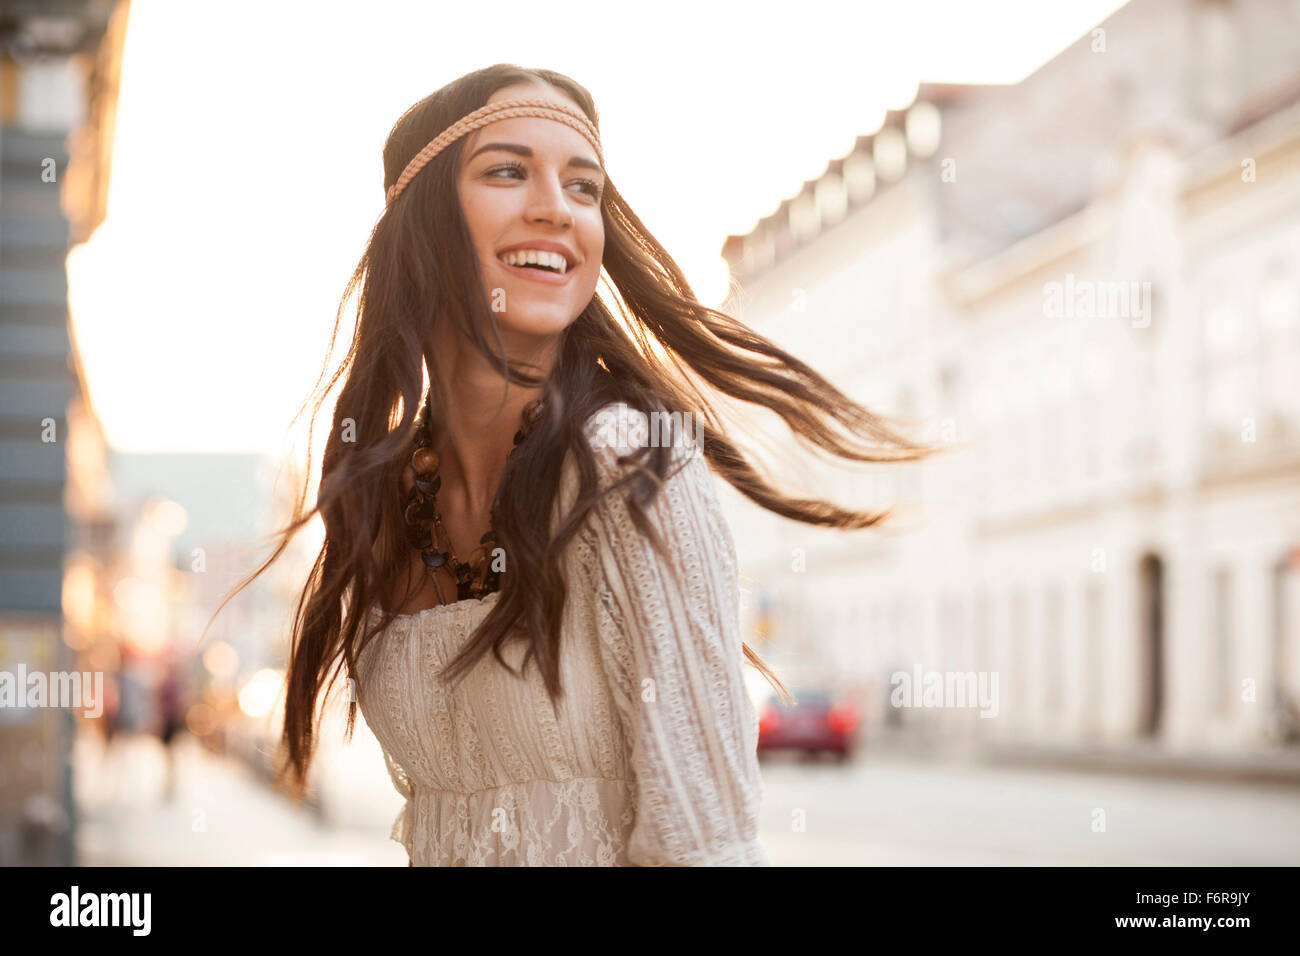 Young woman with tousled hair and headband - Stock Image